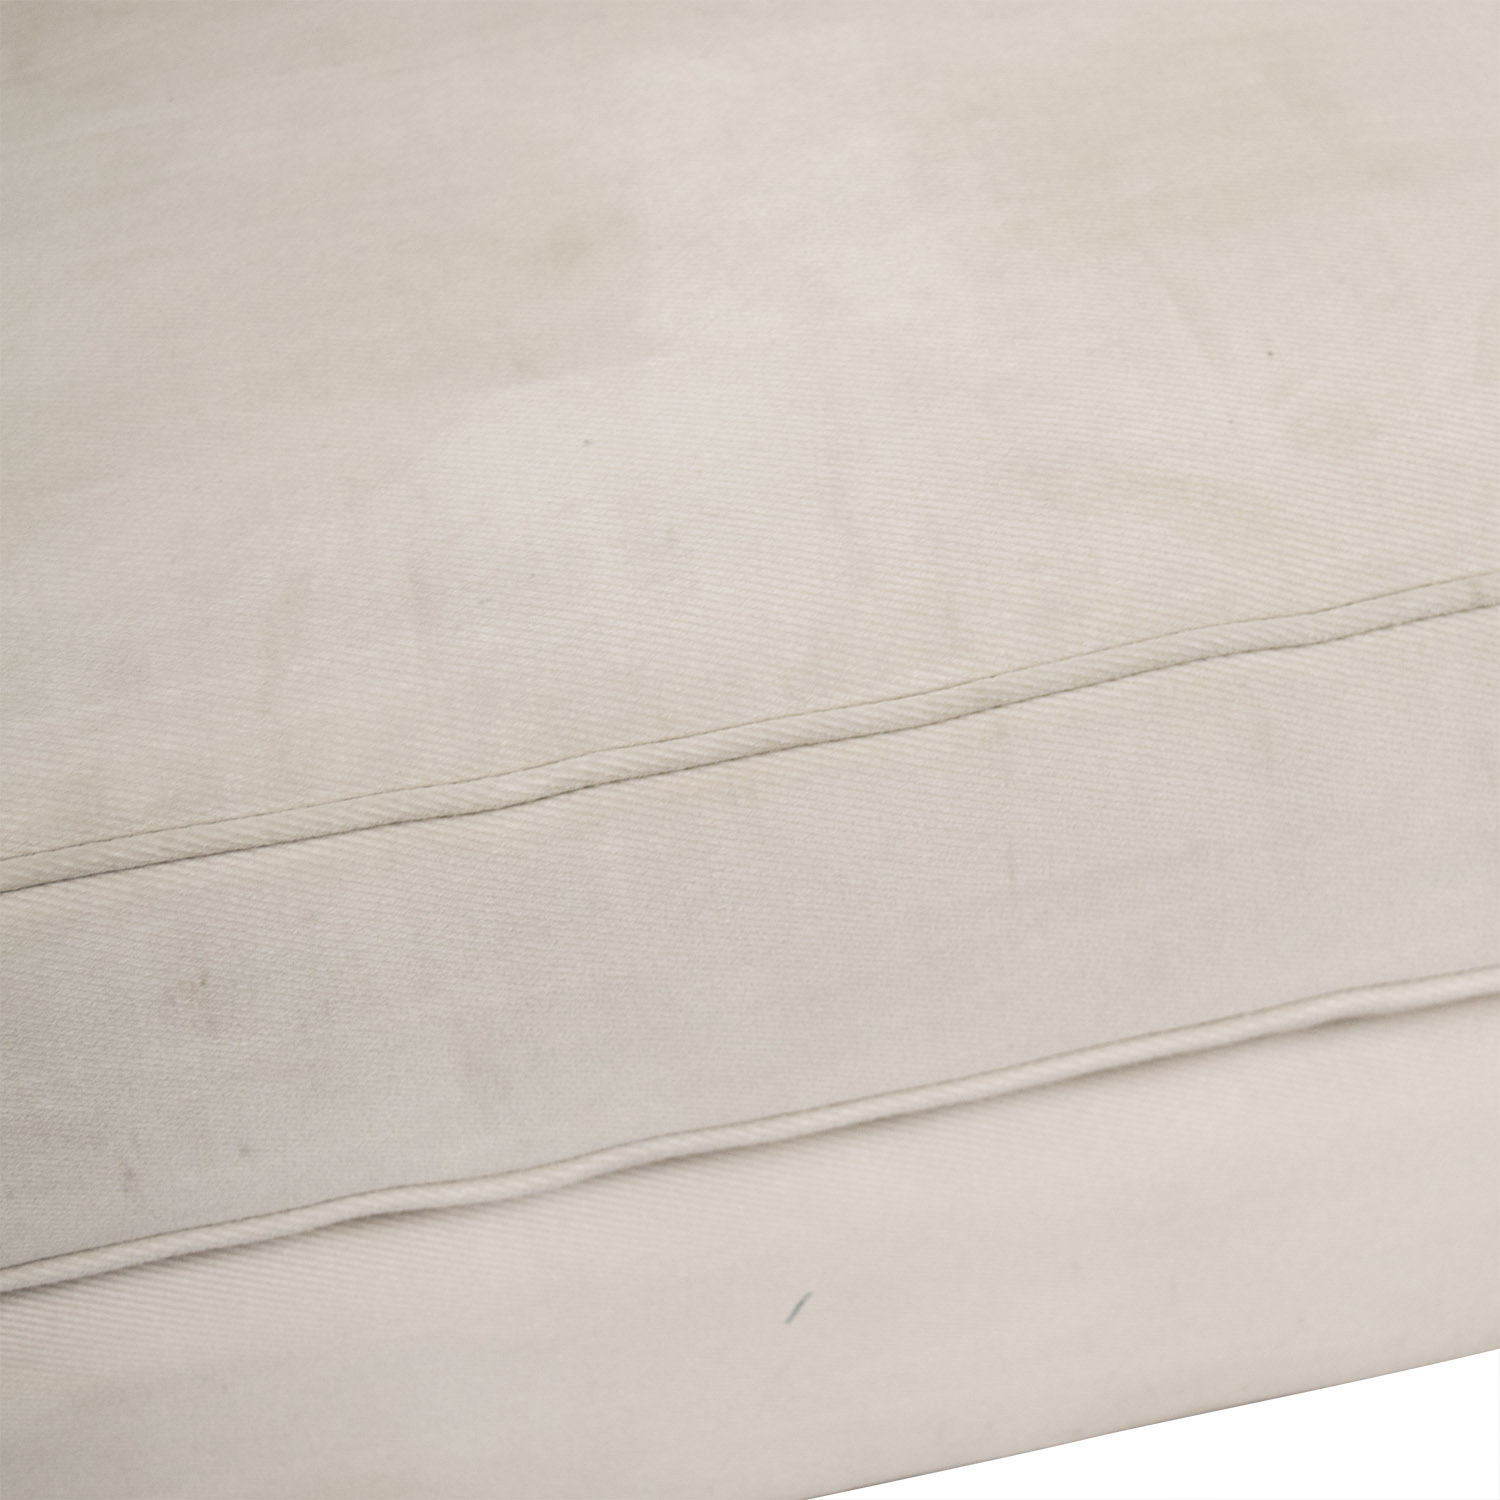 shop Room & Board Room & Board Hawthorne Couch Off-White Couch online